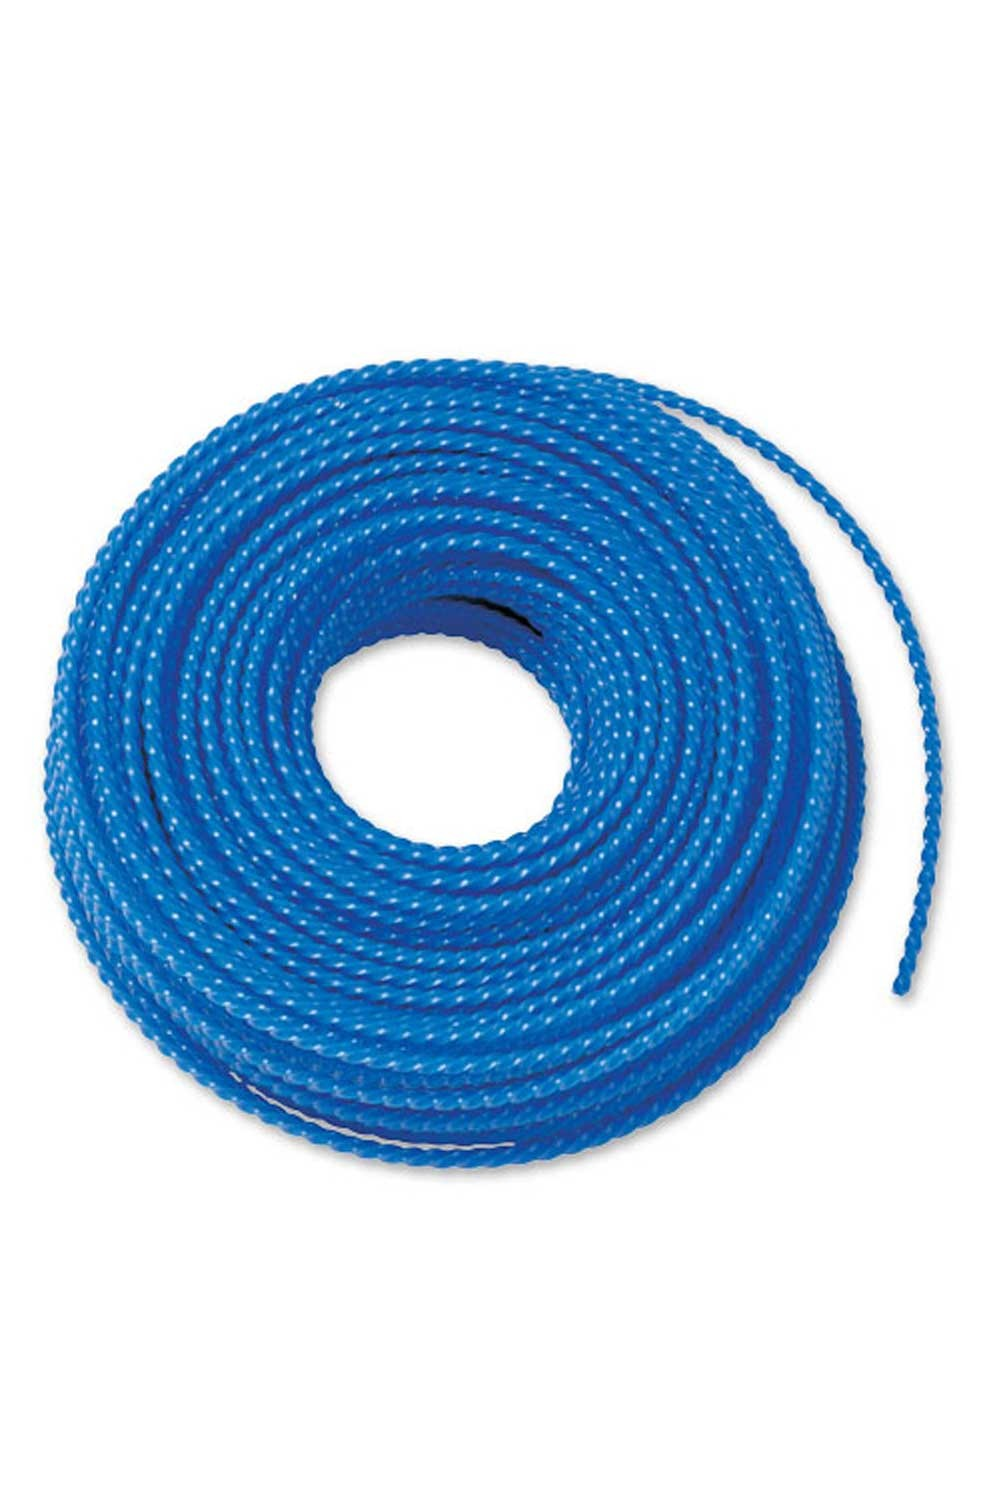 DR 4.5mm x 80ft Roll - Blue Nylon